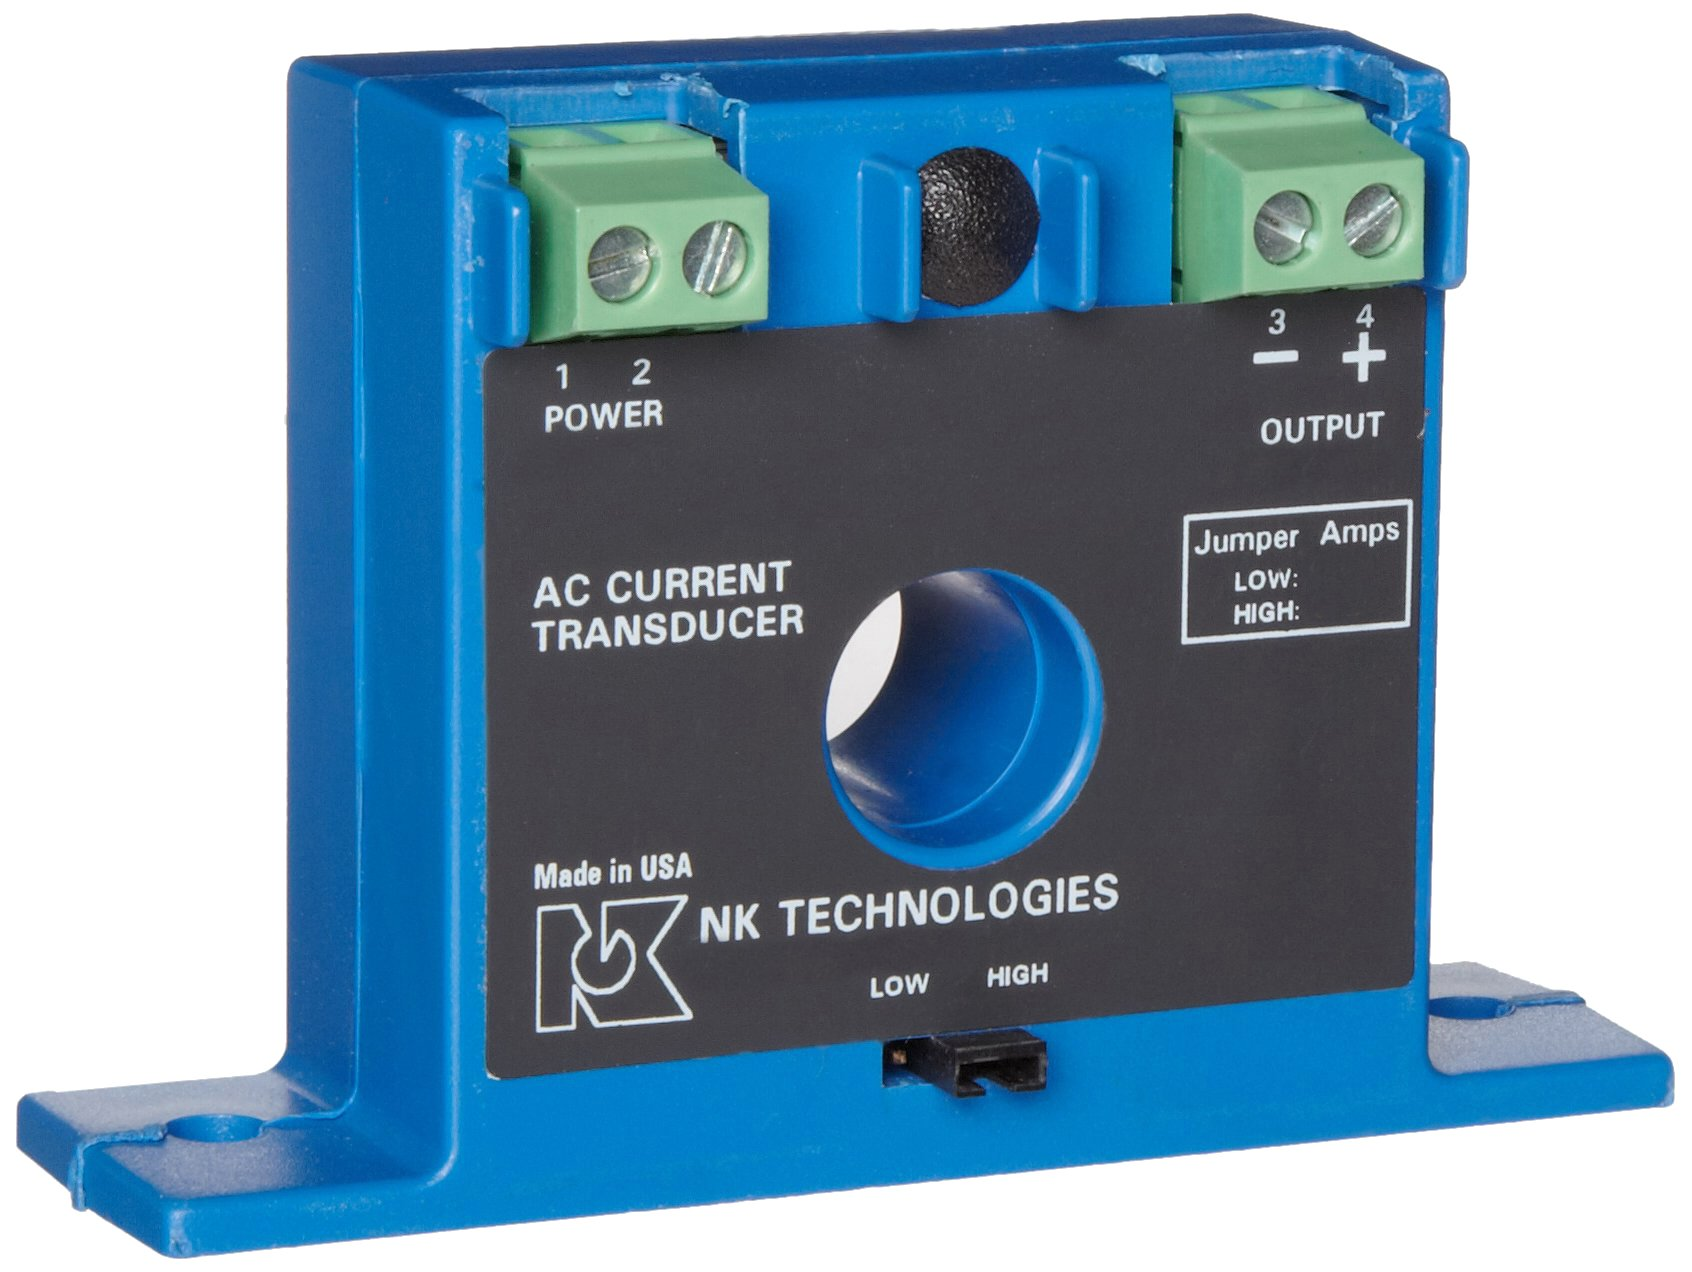 NK Technologies ATP1-420-120-FF AC Current Transducer, Solid-core, Front Term, 4-20mA Output Range, 0-10, 0-20, & 0-50A Input Range, 120VAC Power Supply